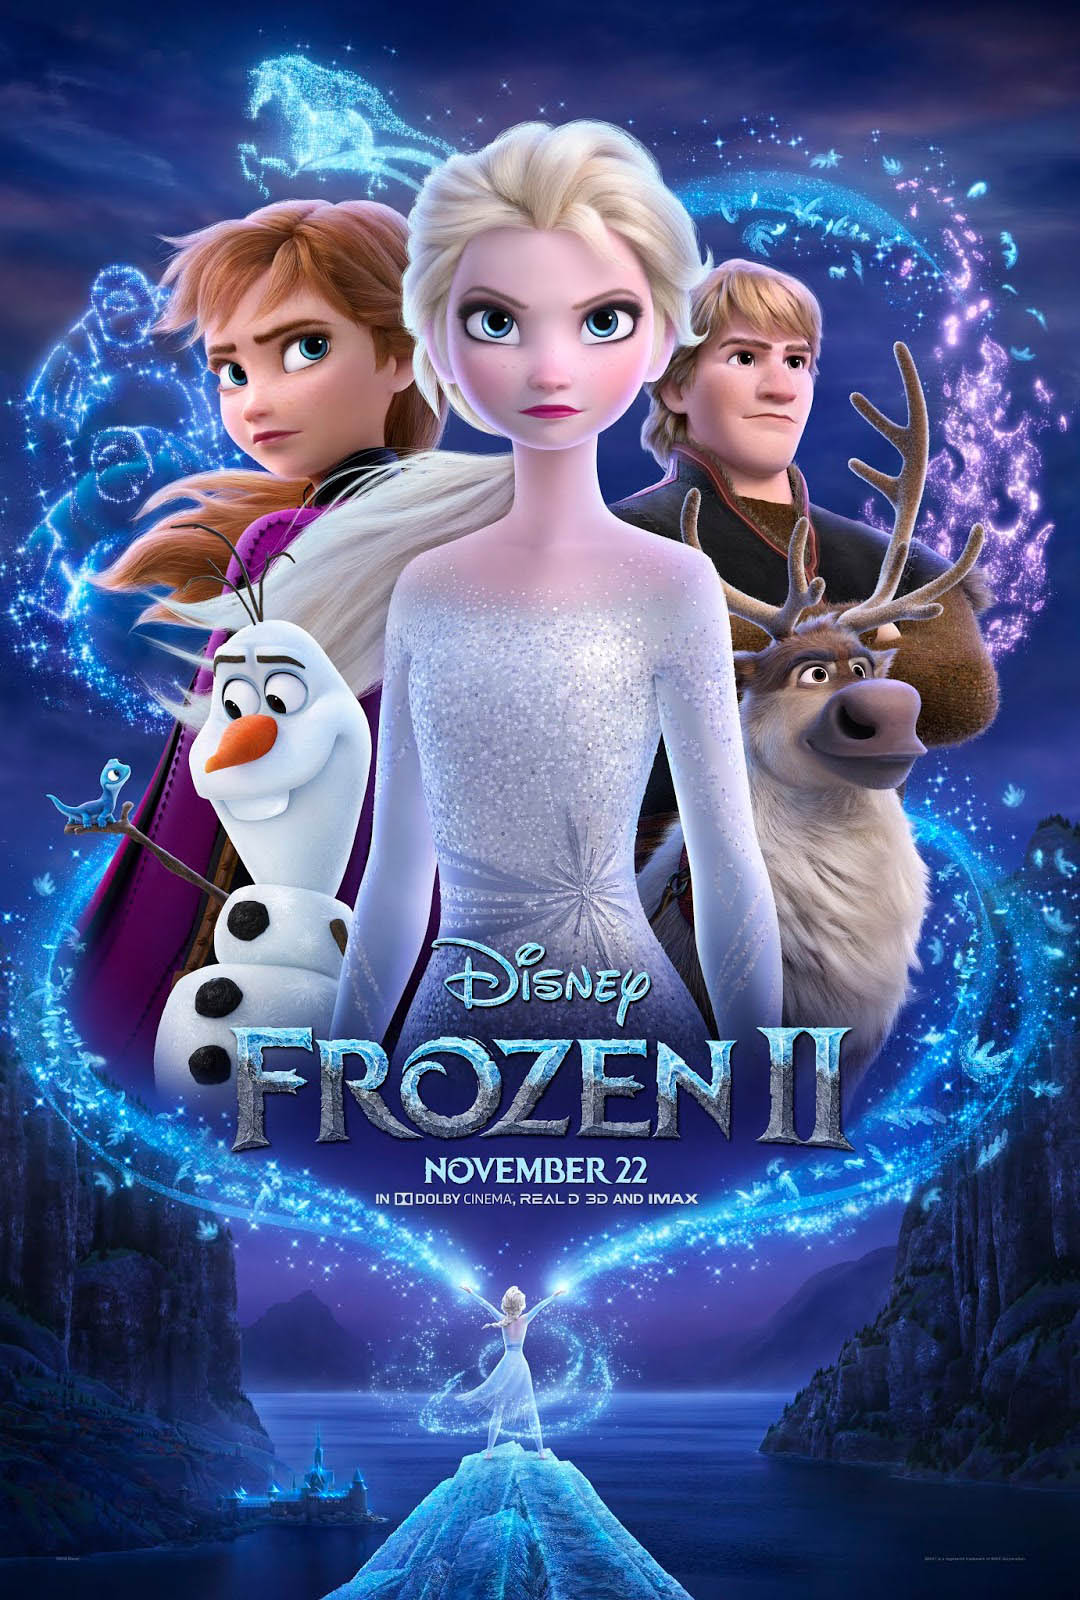 Frozen 2 (2019) Full Movie Free Online